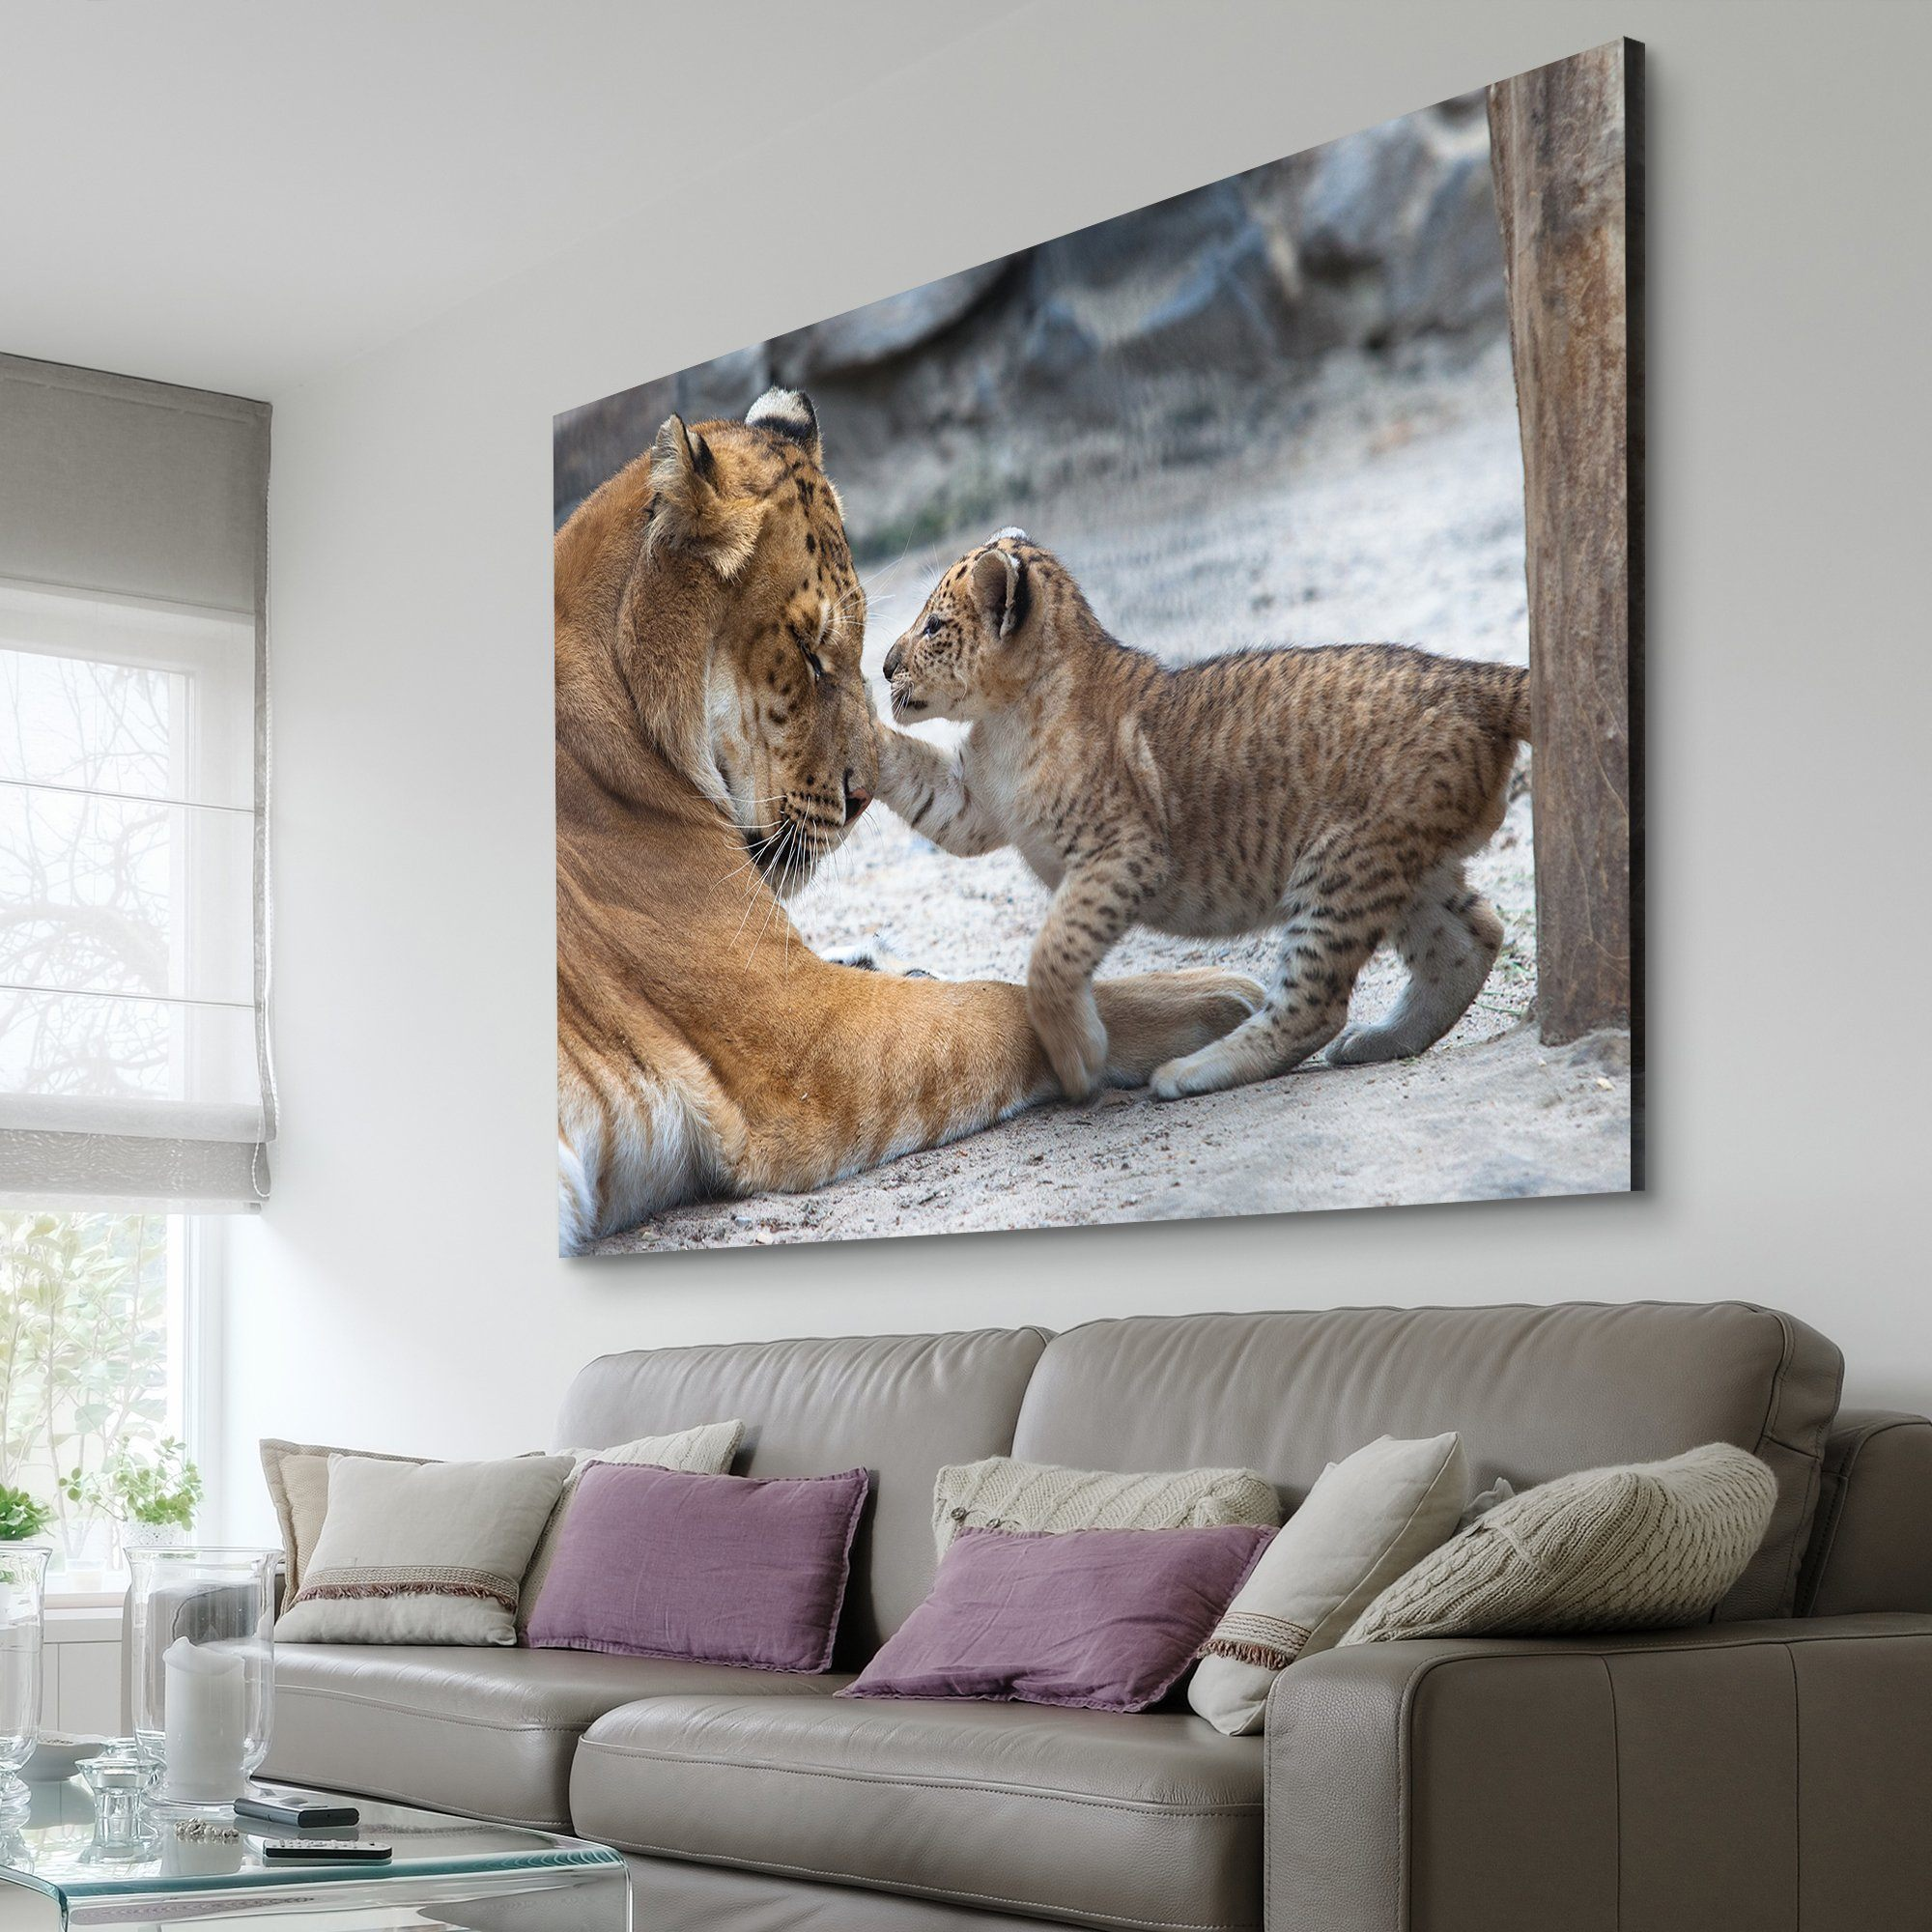 Lion and Cub living room wall art